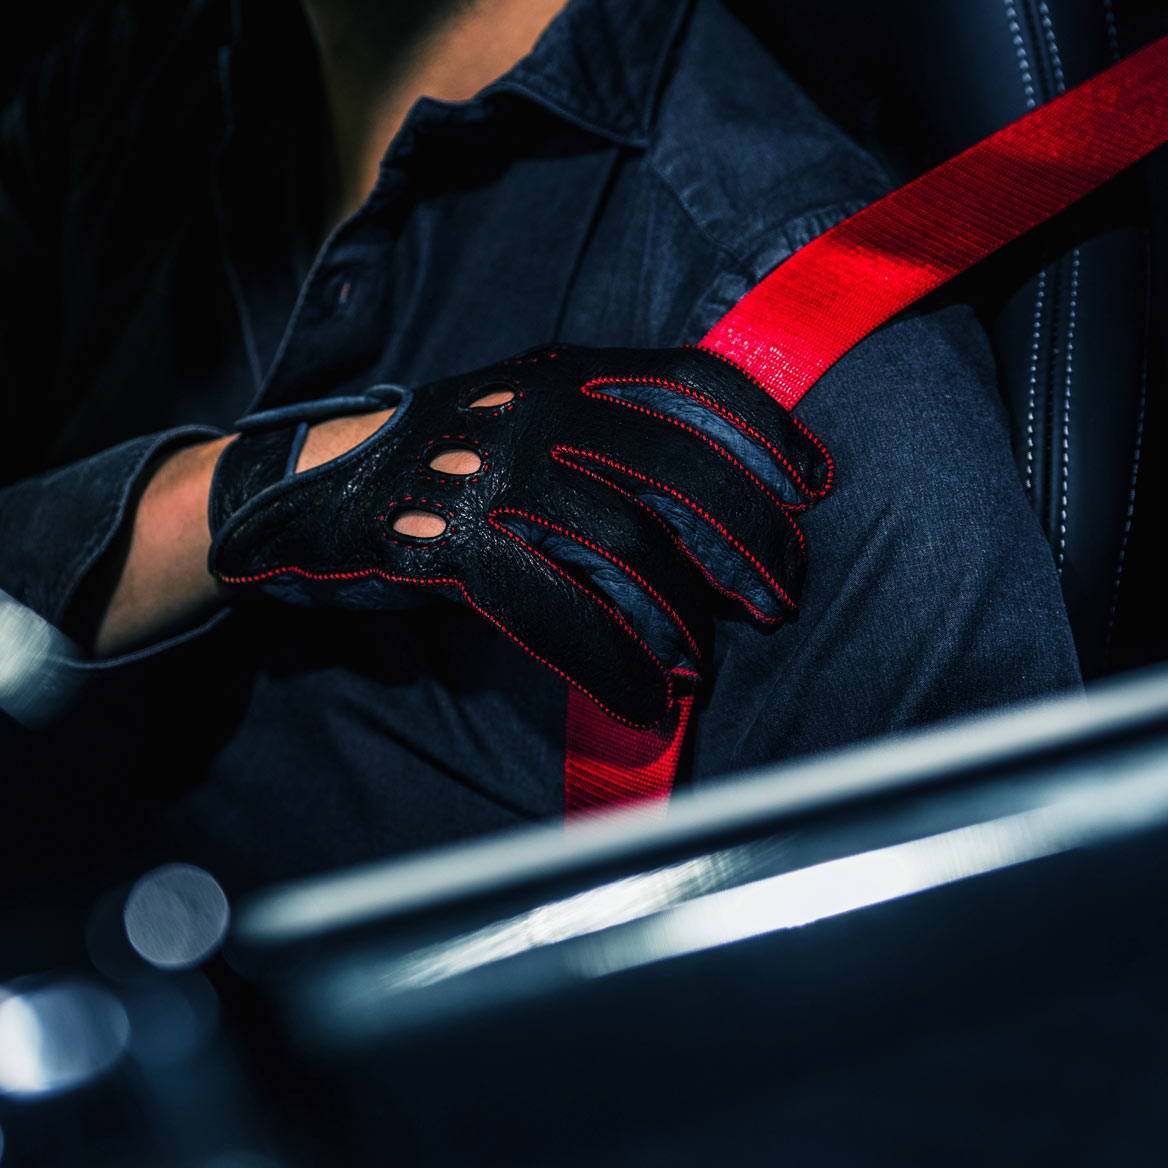 Ferrari red driving gloves